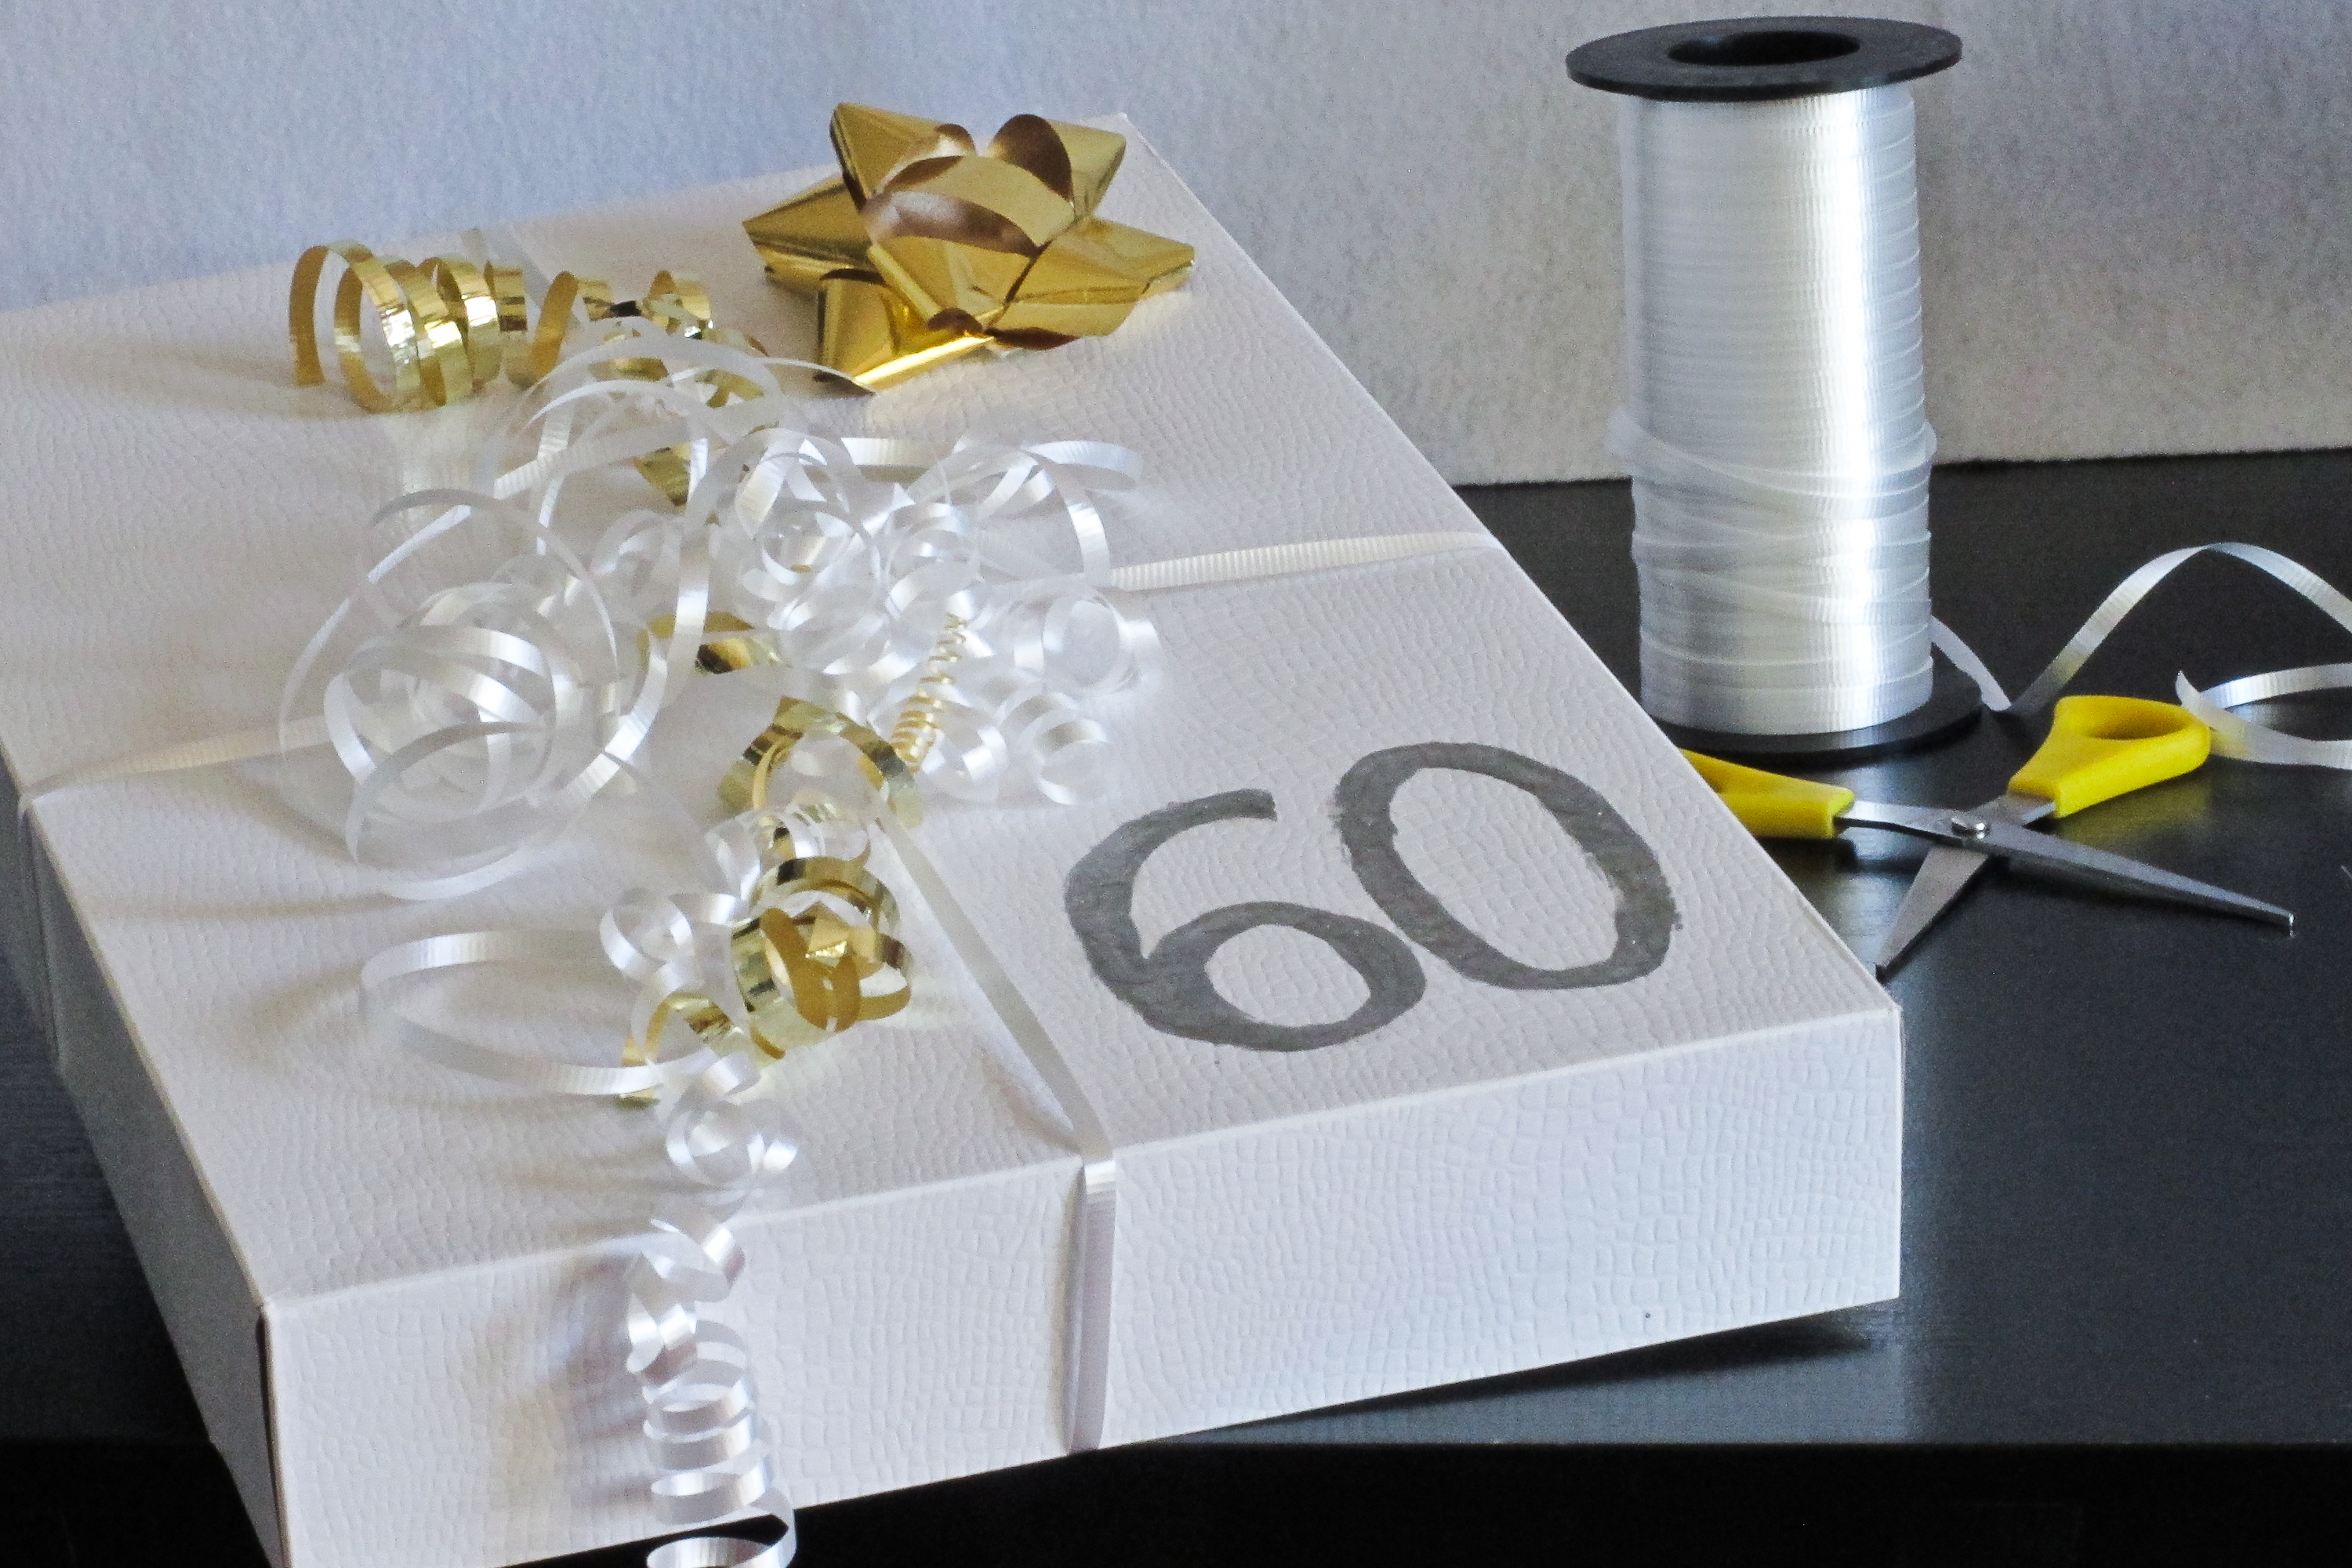 60th wedding anniversary gifts parents wedding gifts for parents Offer your parents a gift full of reminders of the year in which they were married such as a handmade or custom printed book featuring their wedding